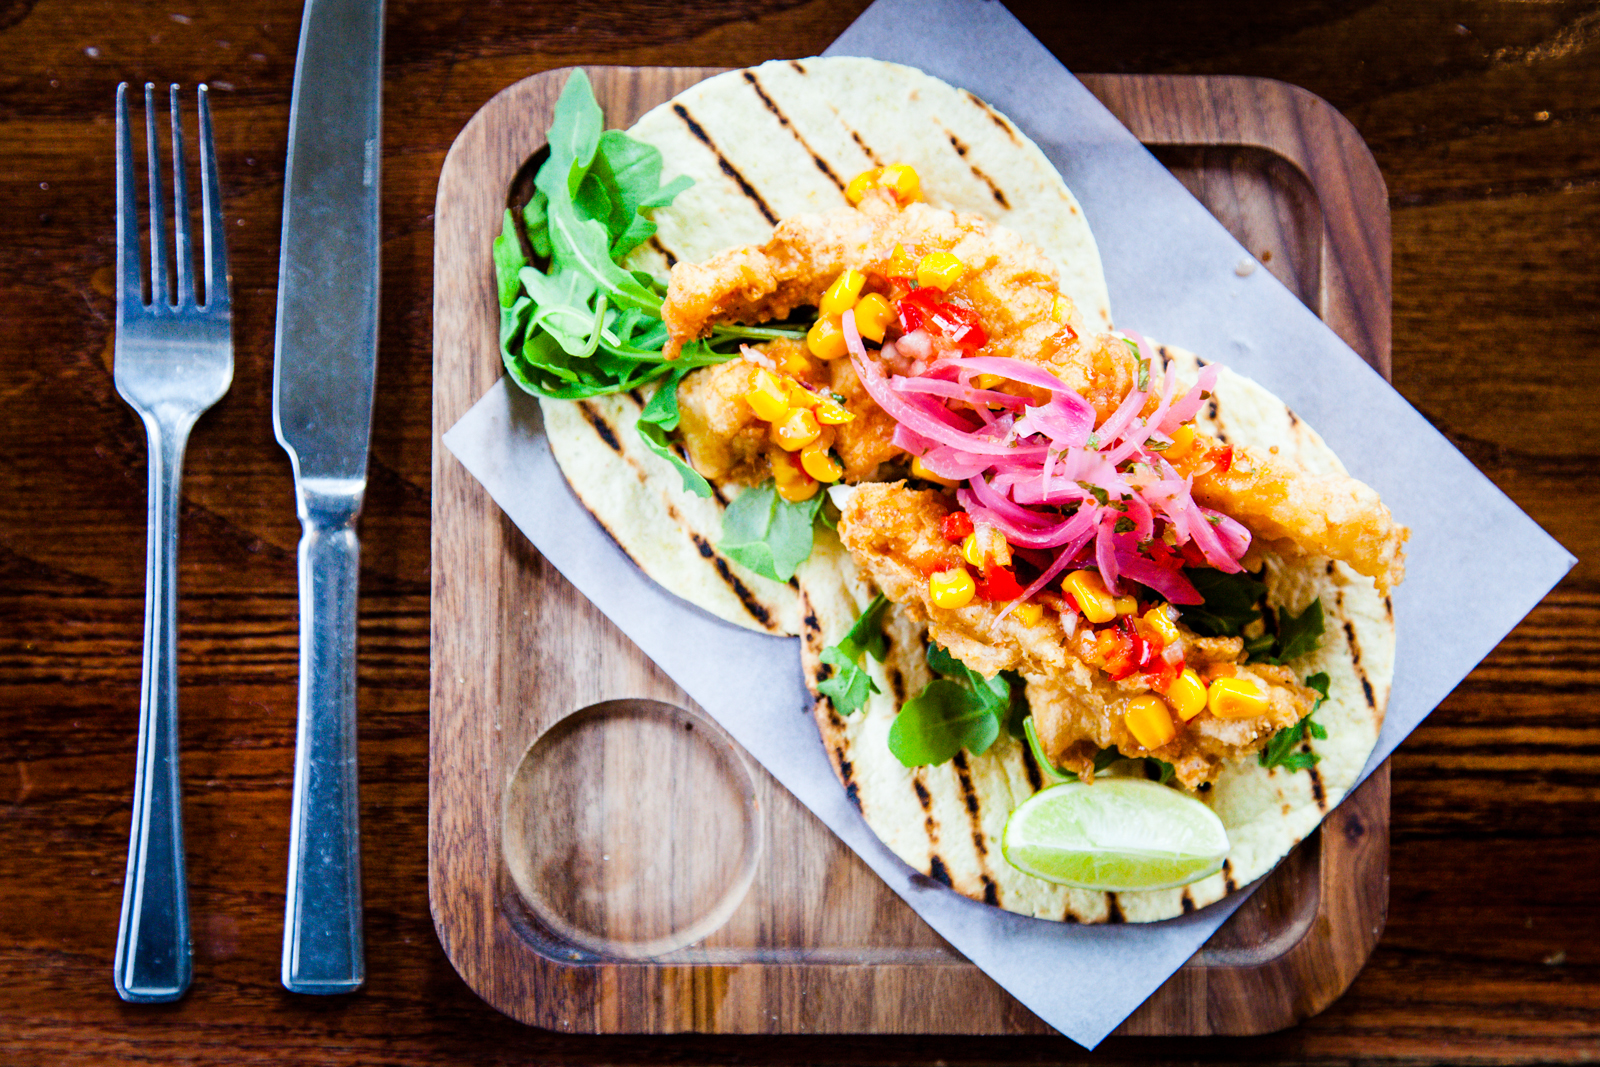 Reserve a table at Las Iguanas - Reading